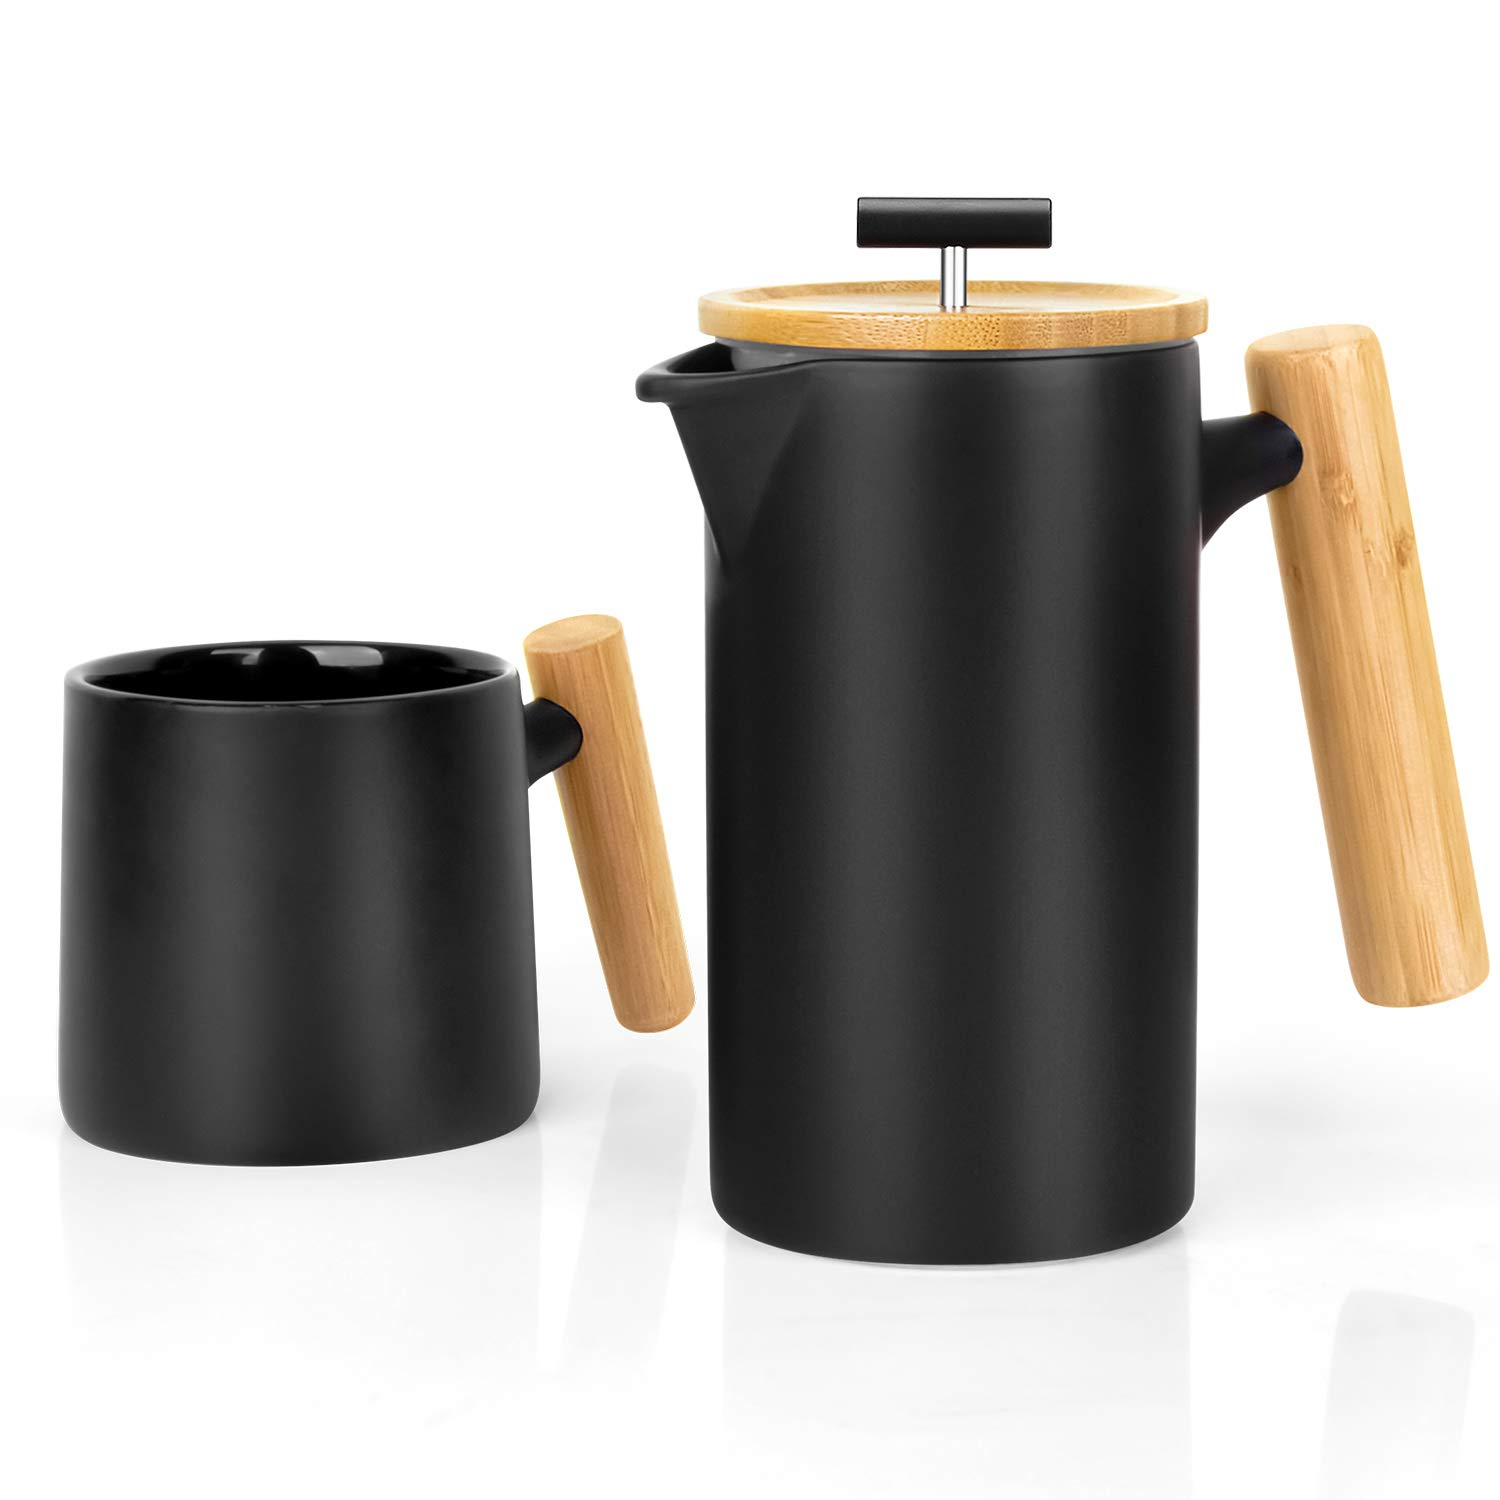 Amazon.com: Ceramic French Press Coffee Maker/Coffee Press/Coffee Plunger (20 oz.) |Non-Porous Stoneware | with Coffee Mug (Black, Wood): Kitchen & Dining